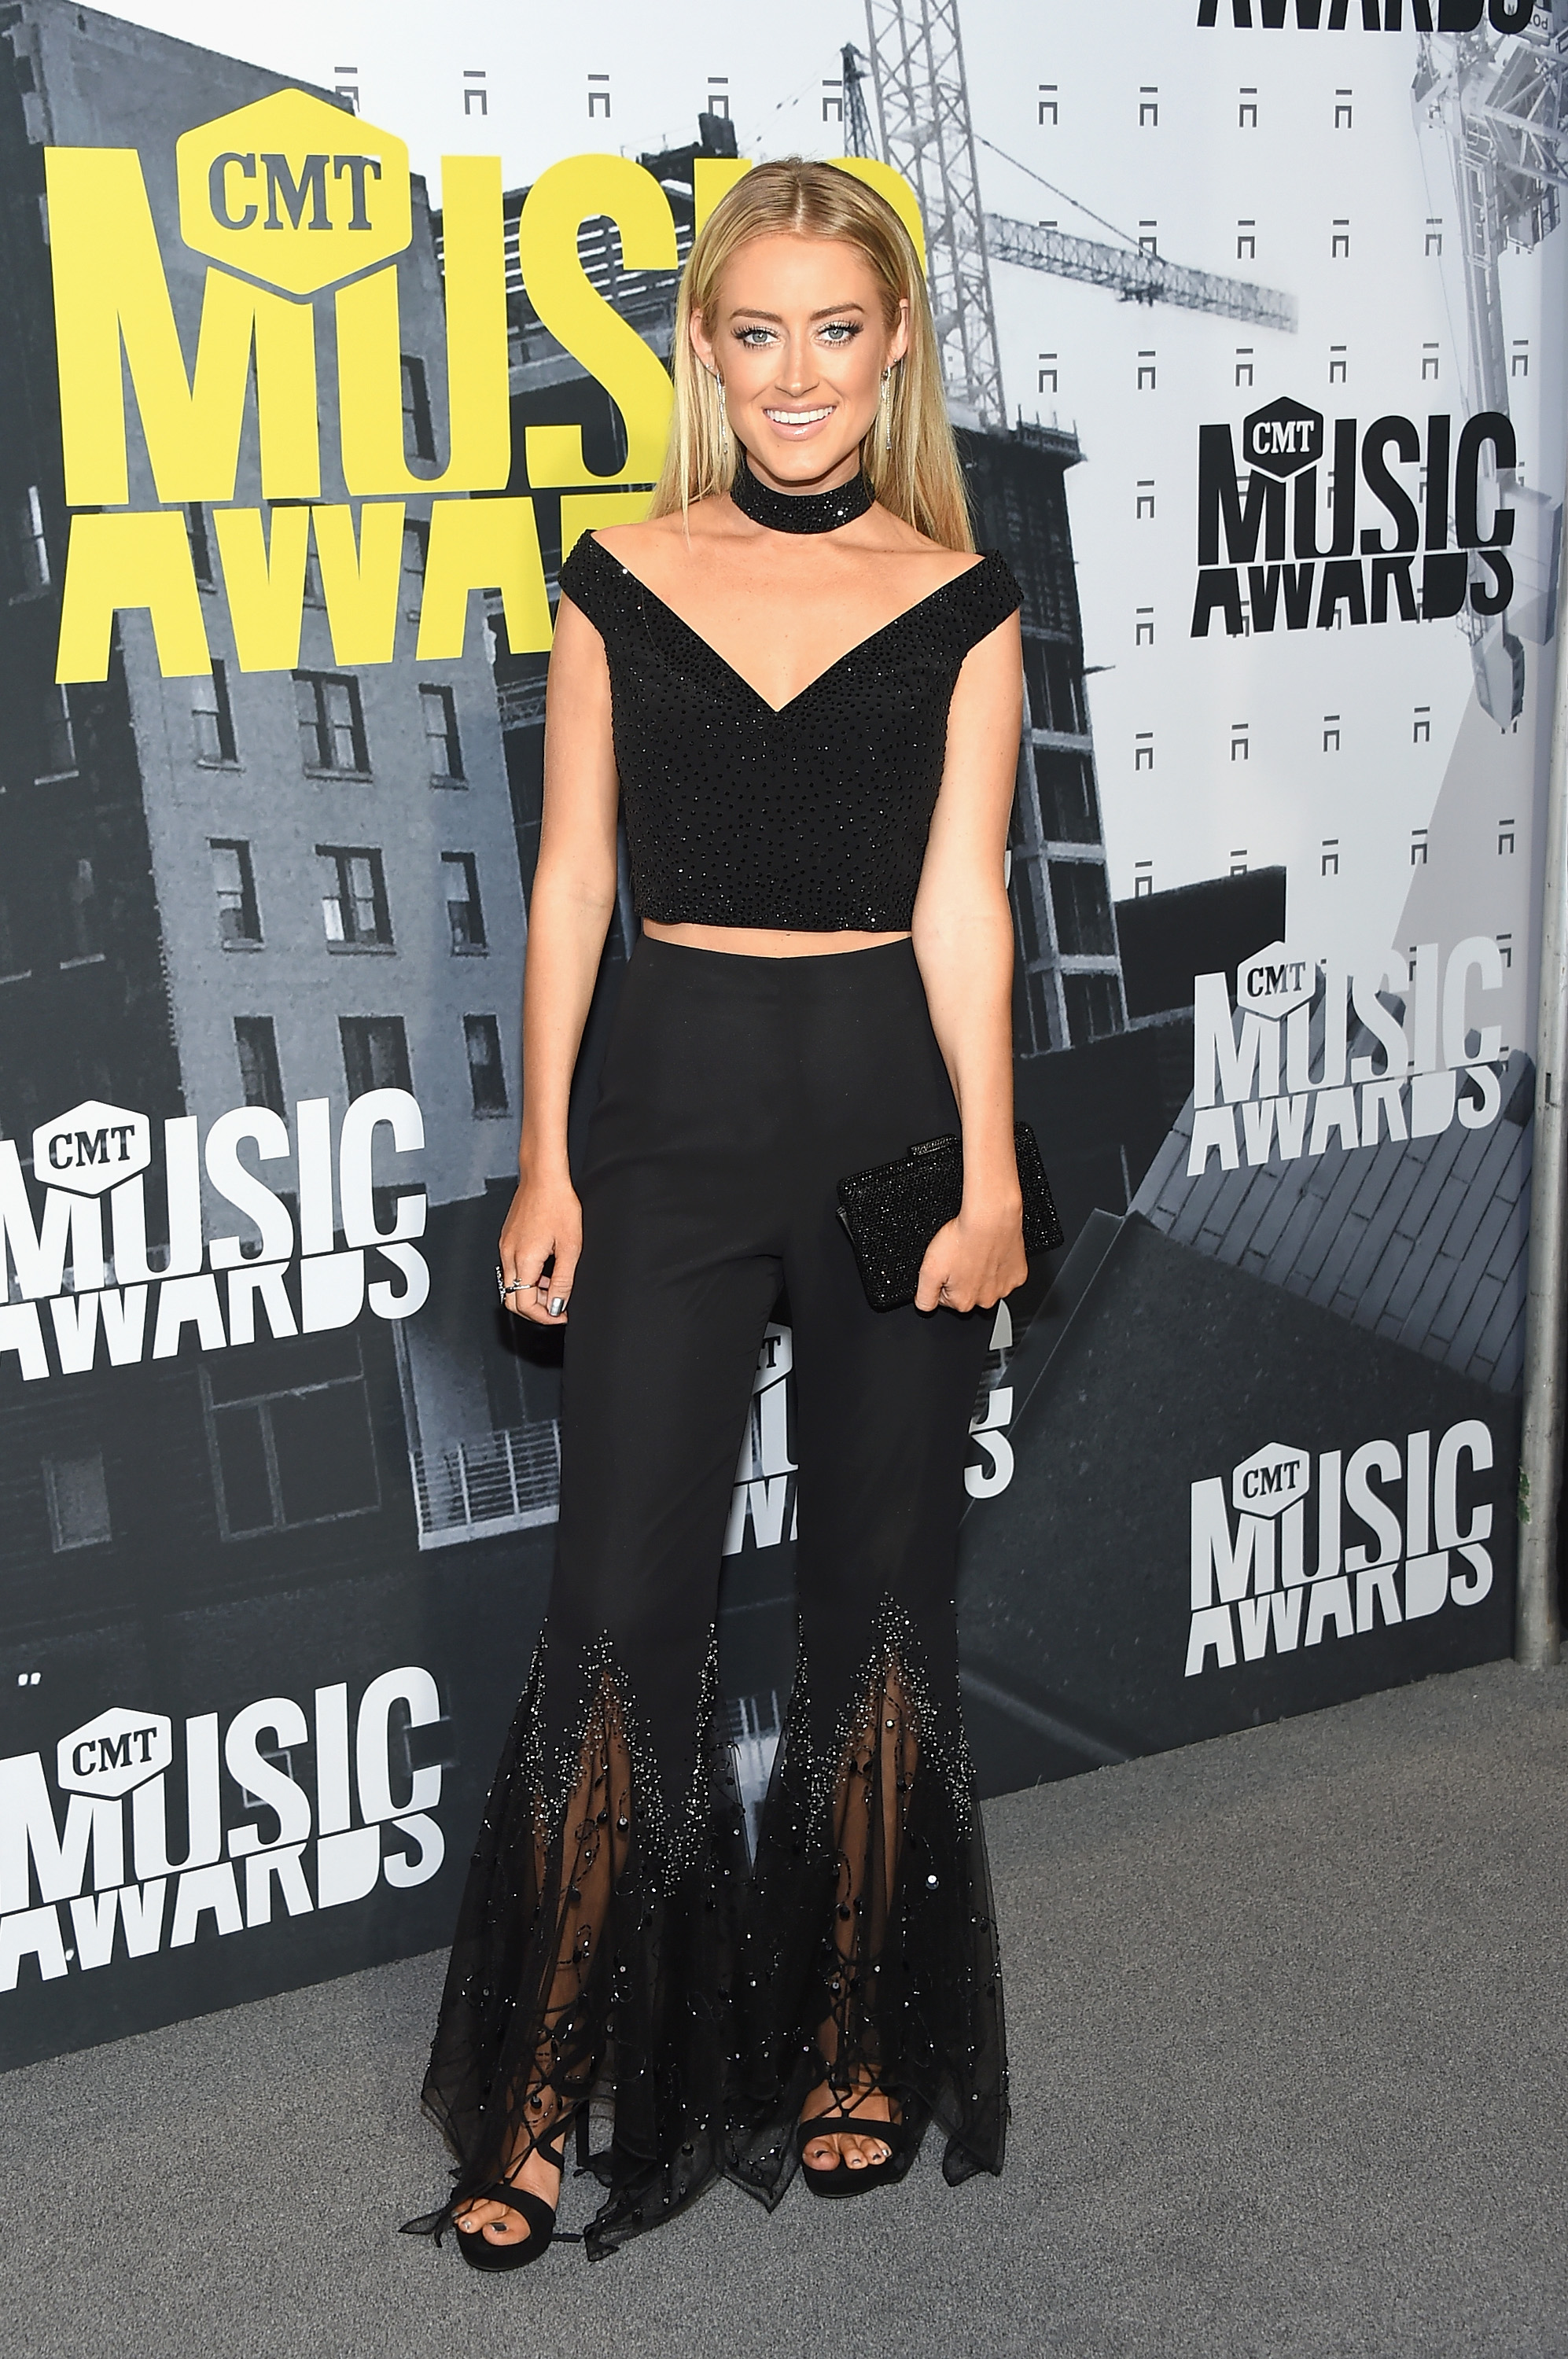 Brooke Eden; Photo by Michael Loccisano/Getty Images For CMT